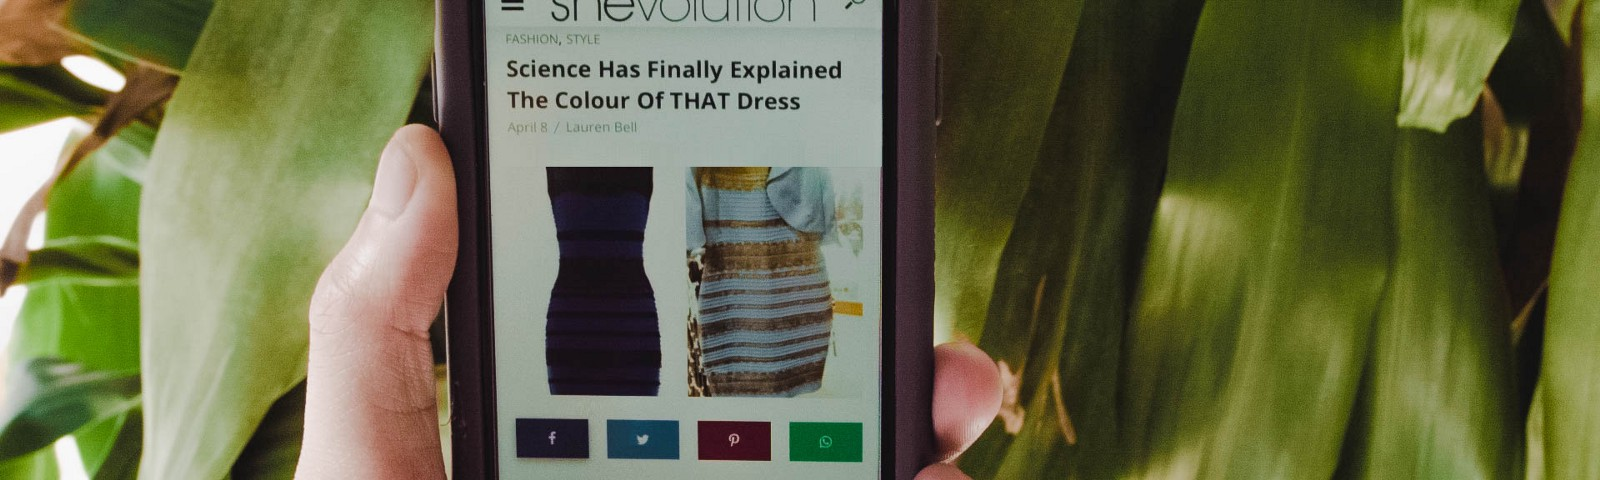 """8707a9c078d0 """"Is the dress blue and black, or white and gold?"""""""